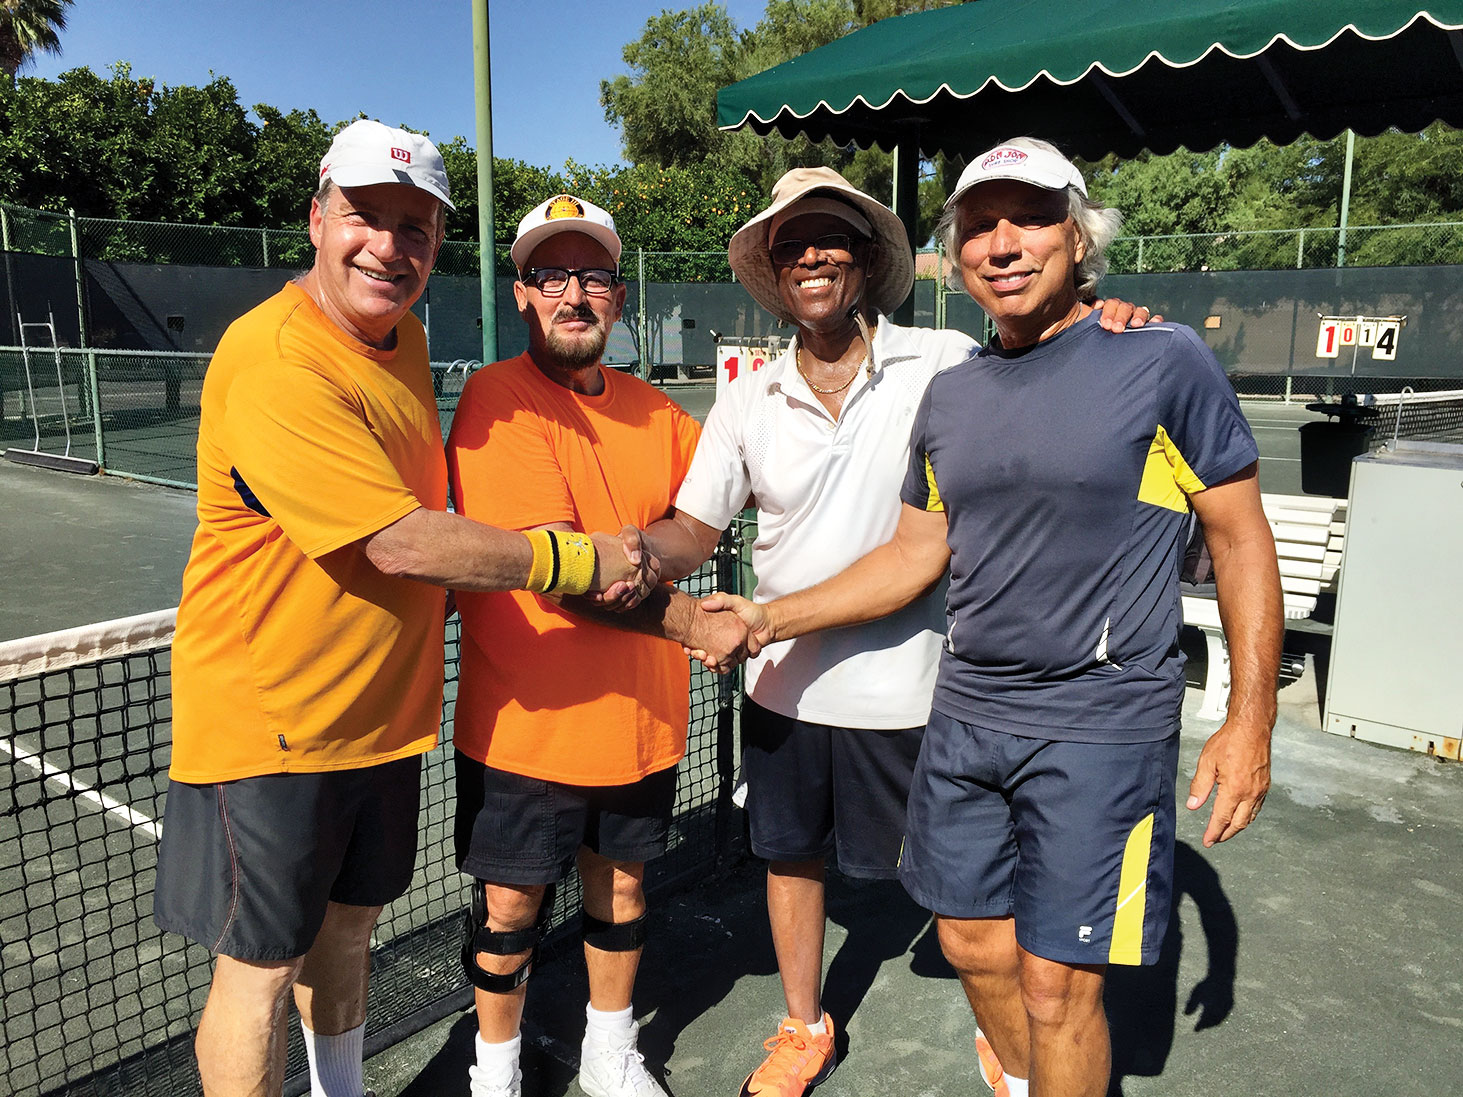 Rami Mayron and Azaaria Azaria, first place in 6.0 Men's Doubles division; also pictured are Tom and Americus from the IronOaks Club